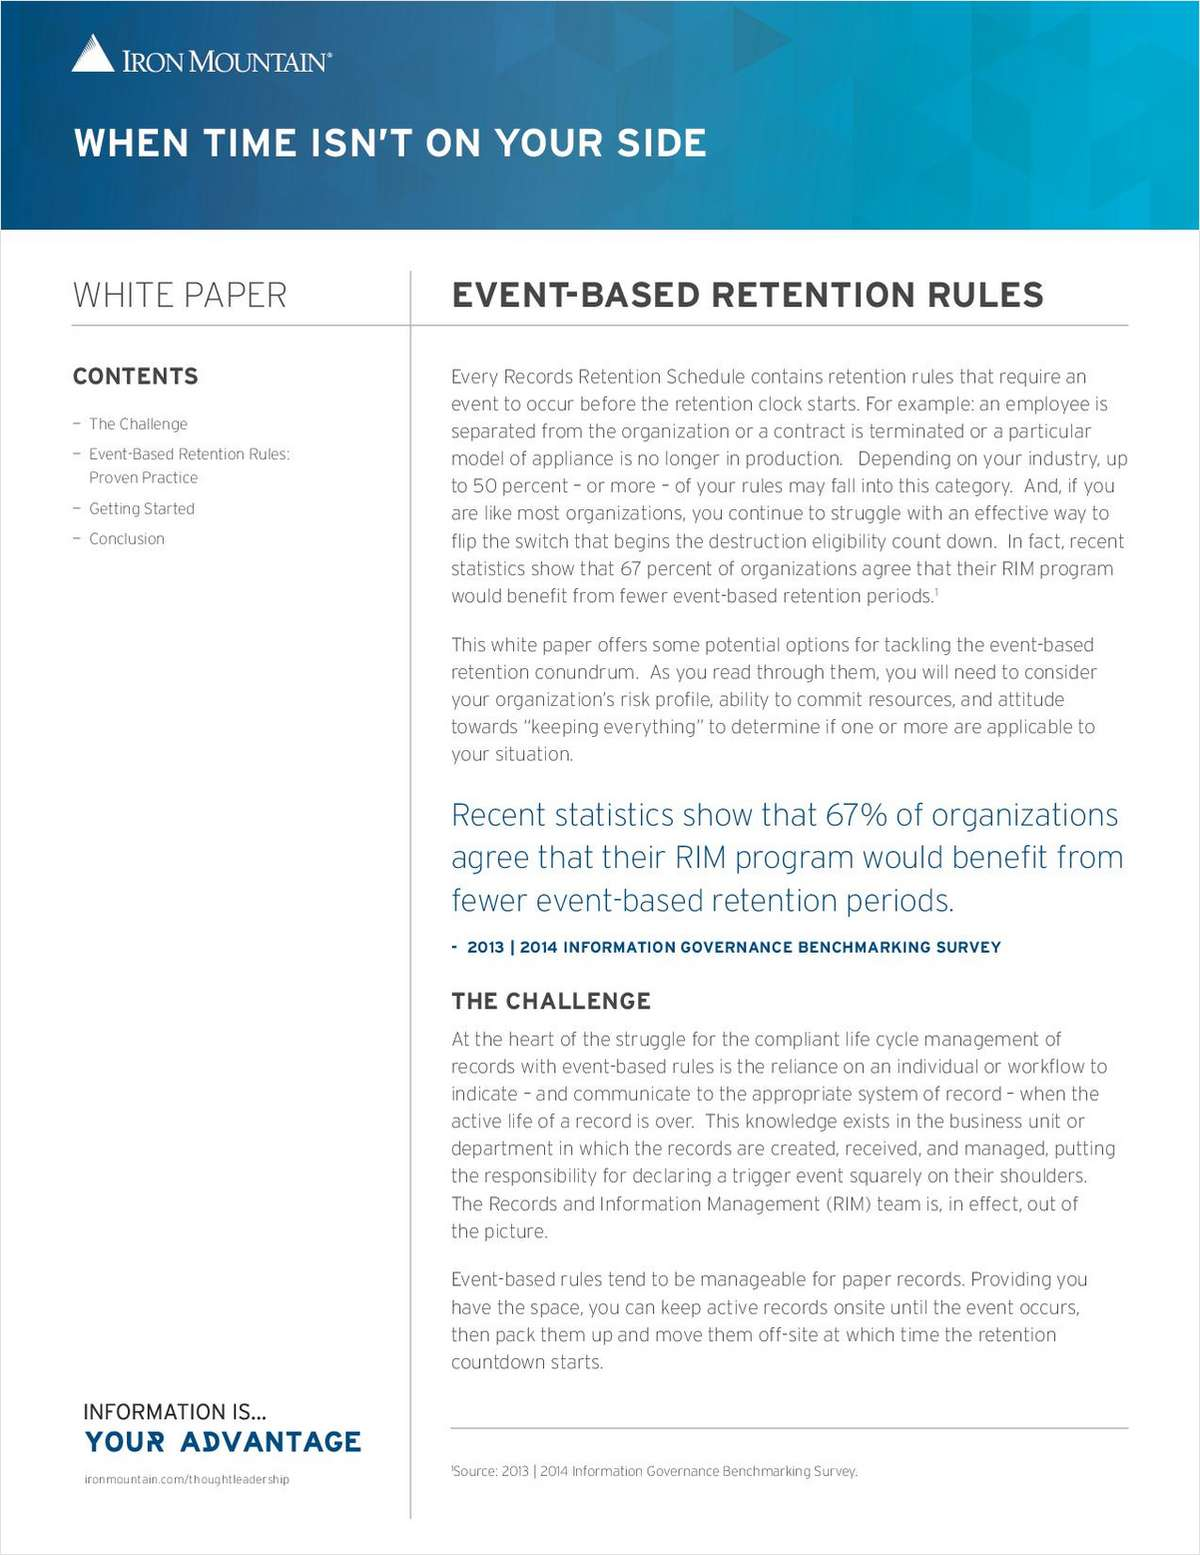 When Time Isn't on Your Side: Options for Tackling Event Based Retention Rules